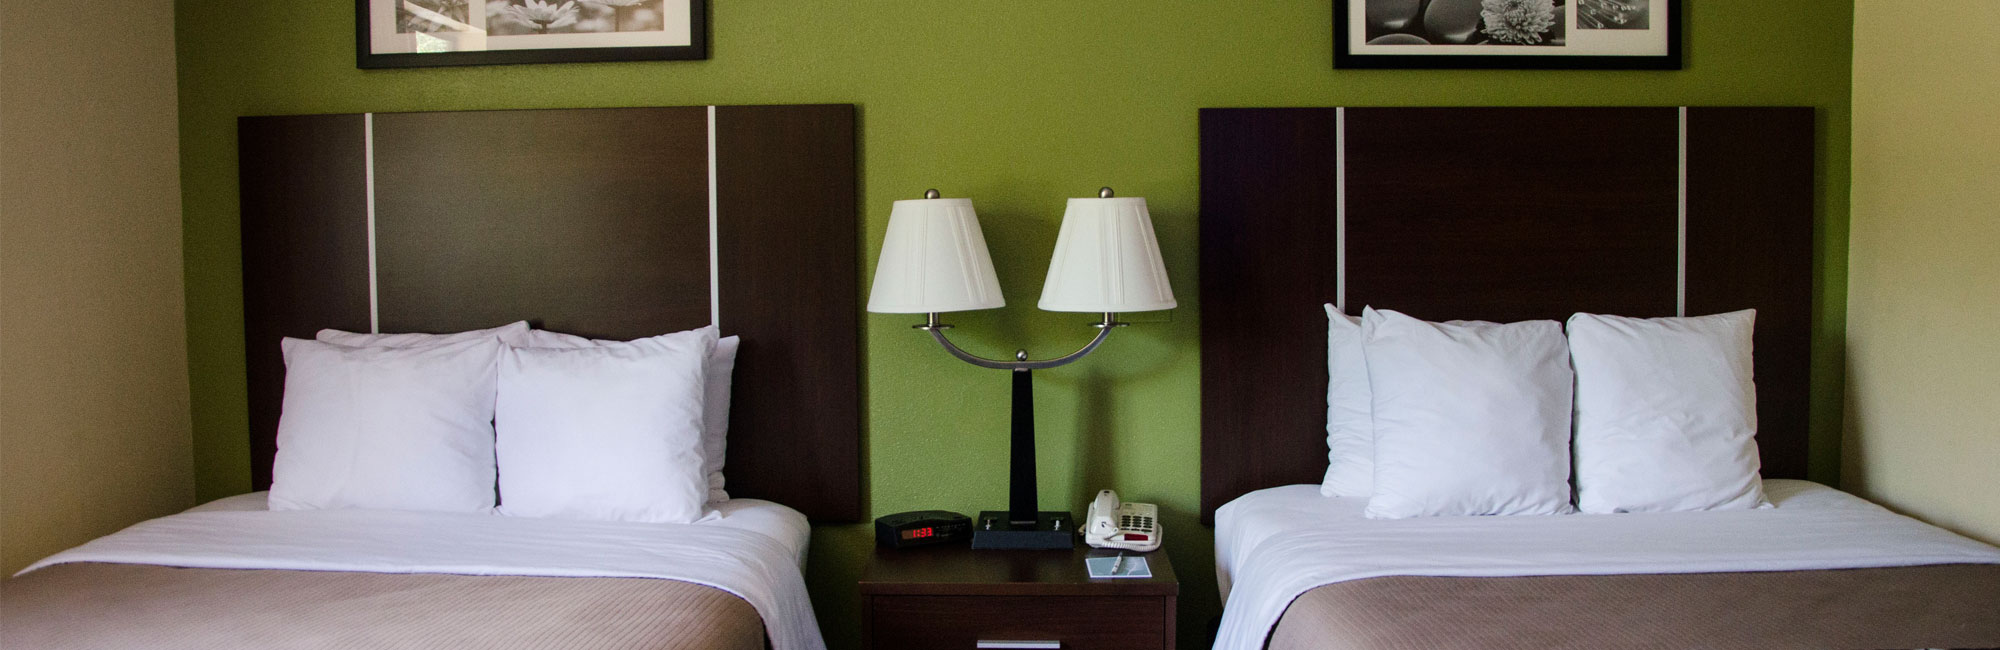 Asheville_Hotels_Sleep_Inn